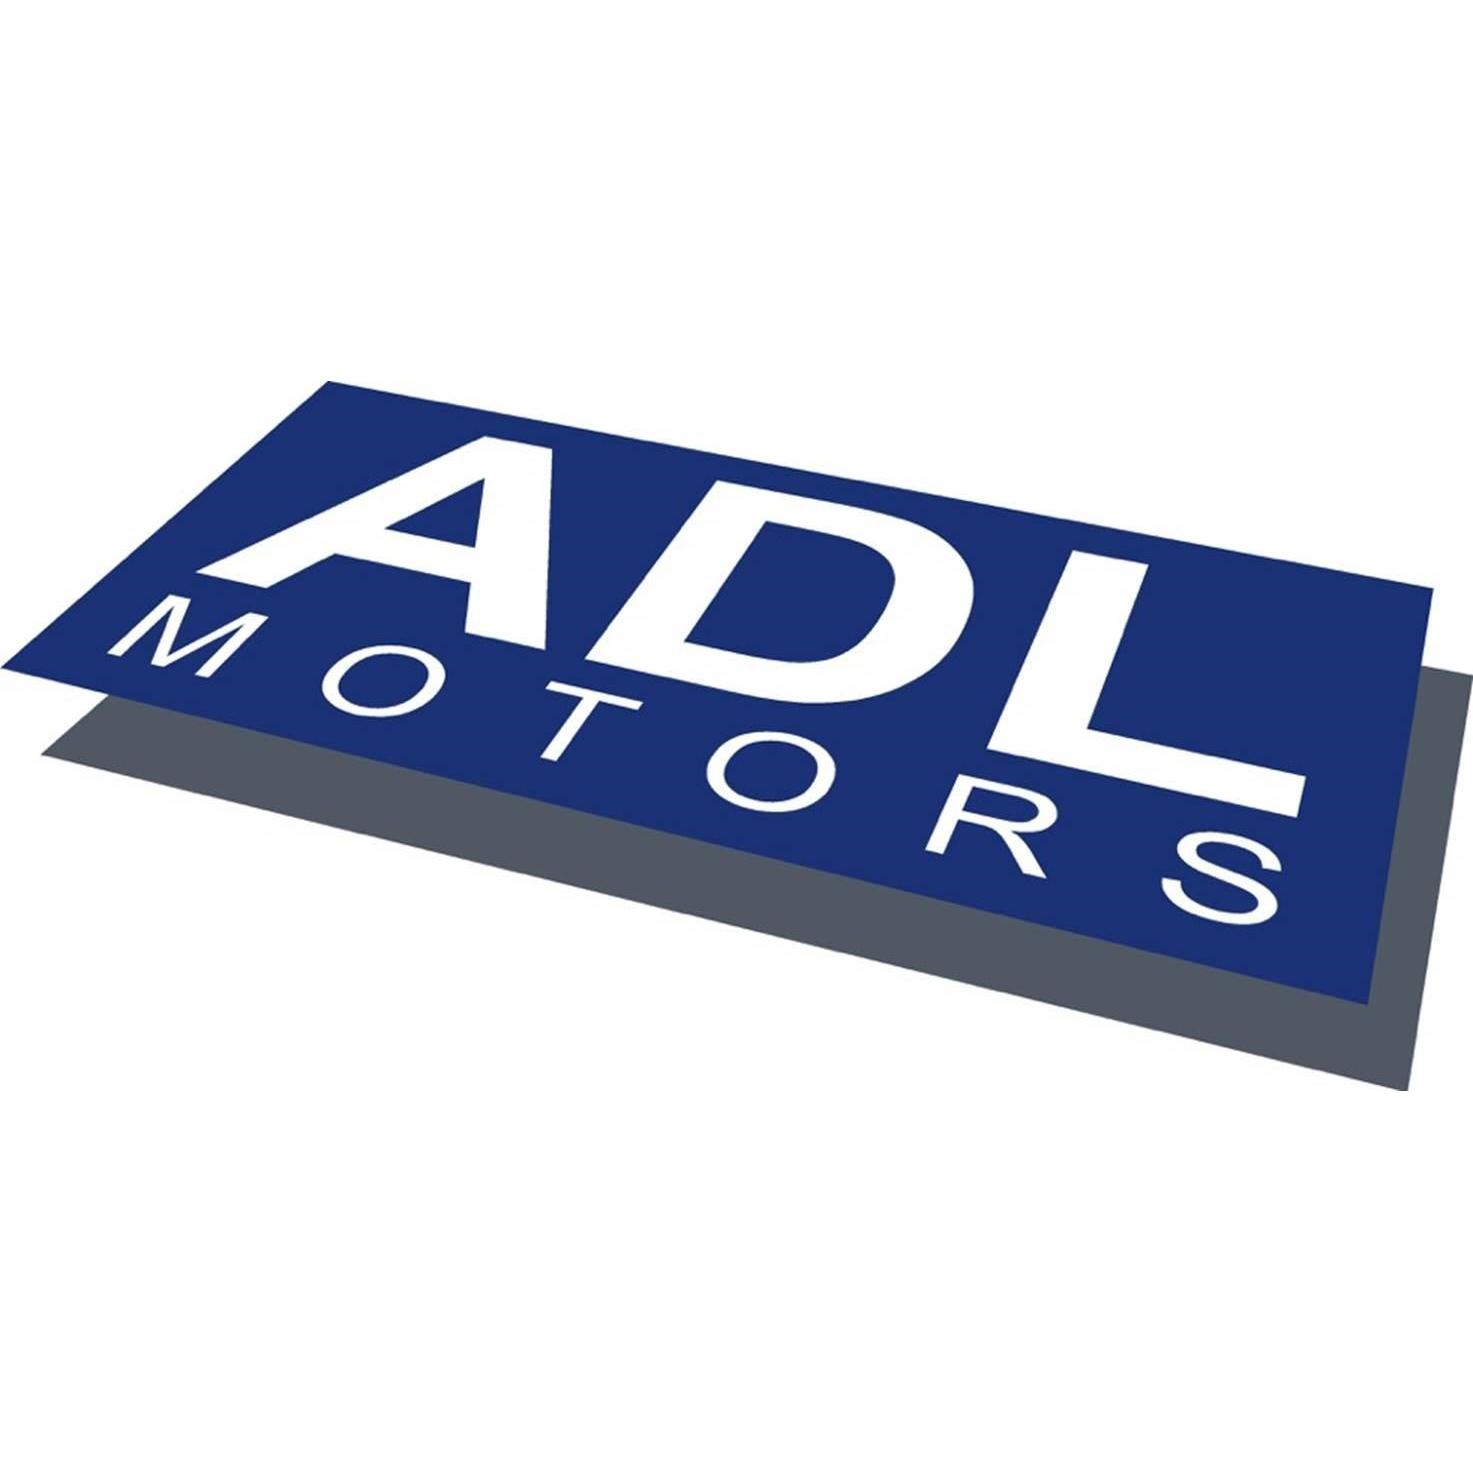 ADL Motors Ltd - Chertsey, Surrey KT16 8EA - 01932 854888 | ShowMeLocal.com